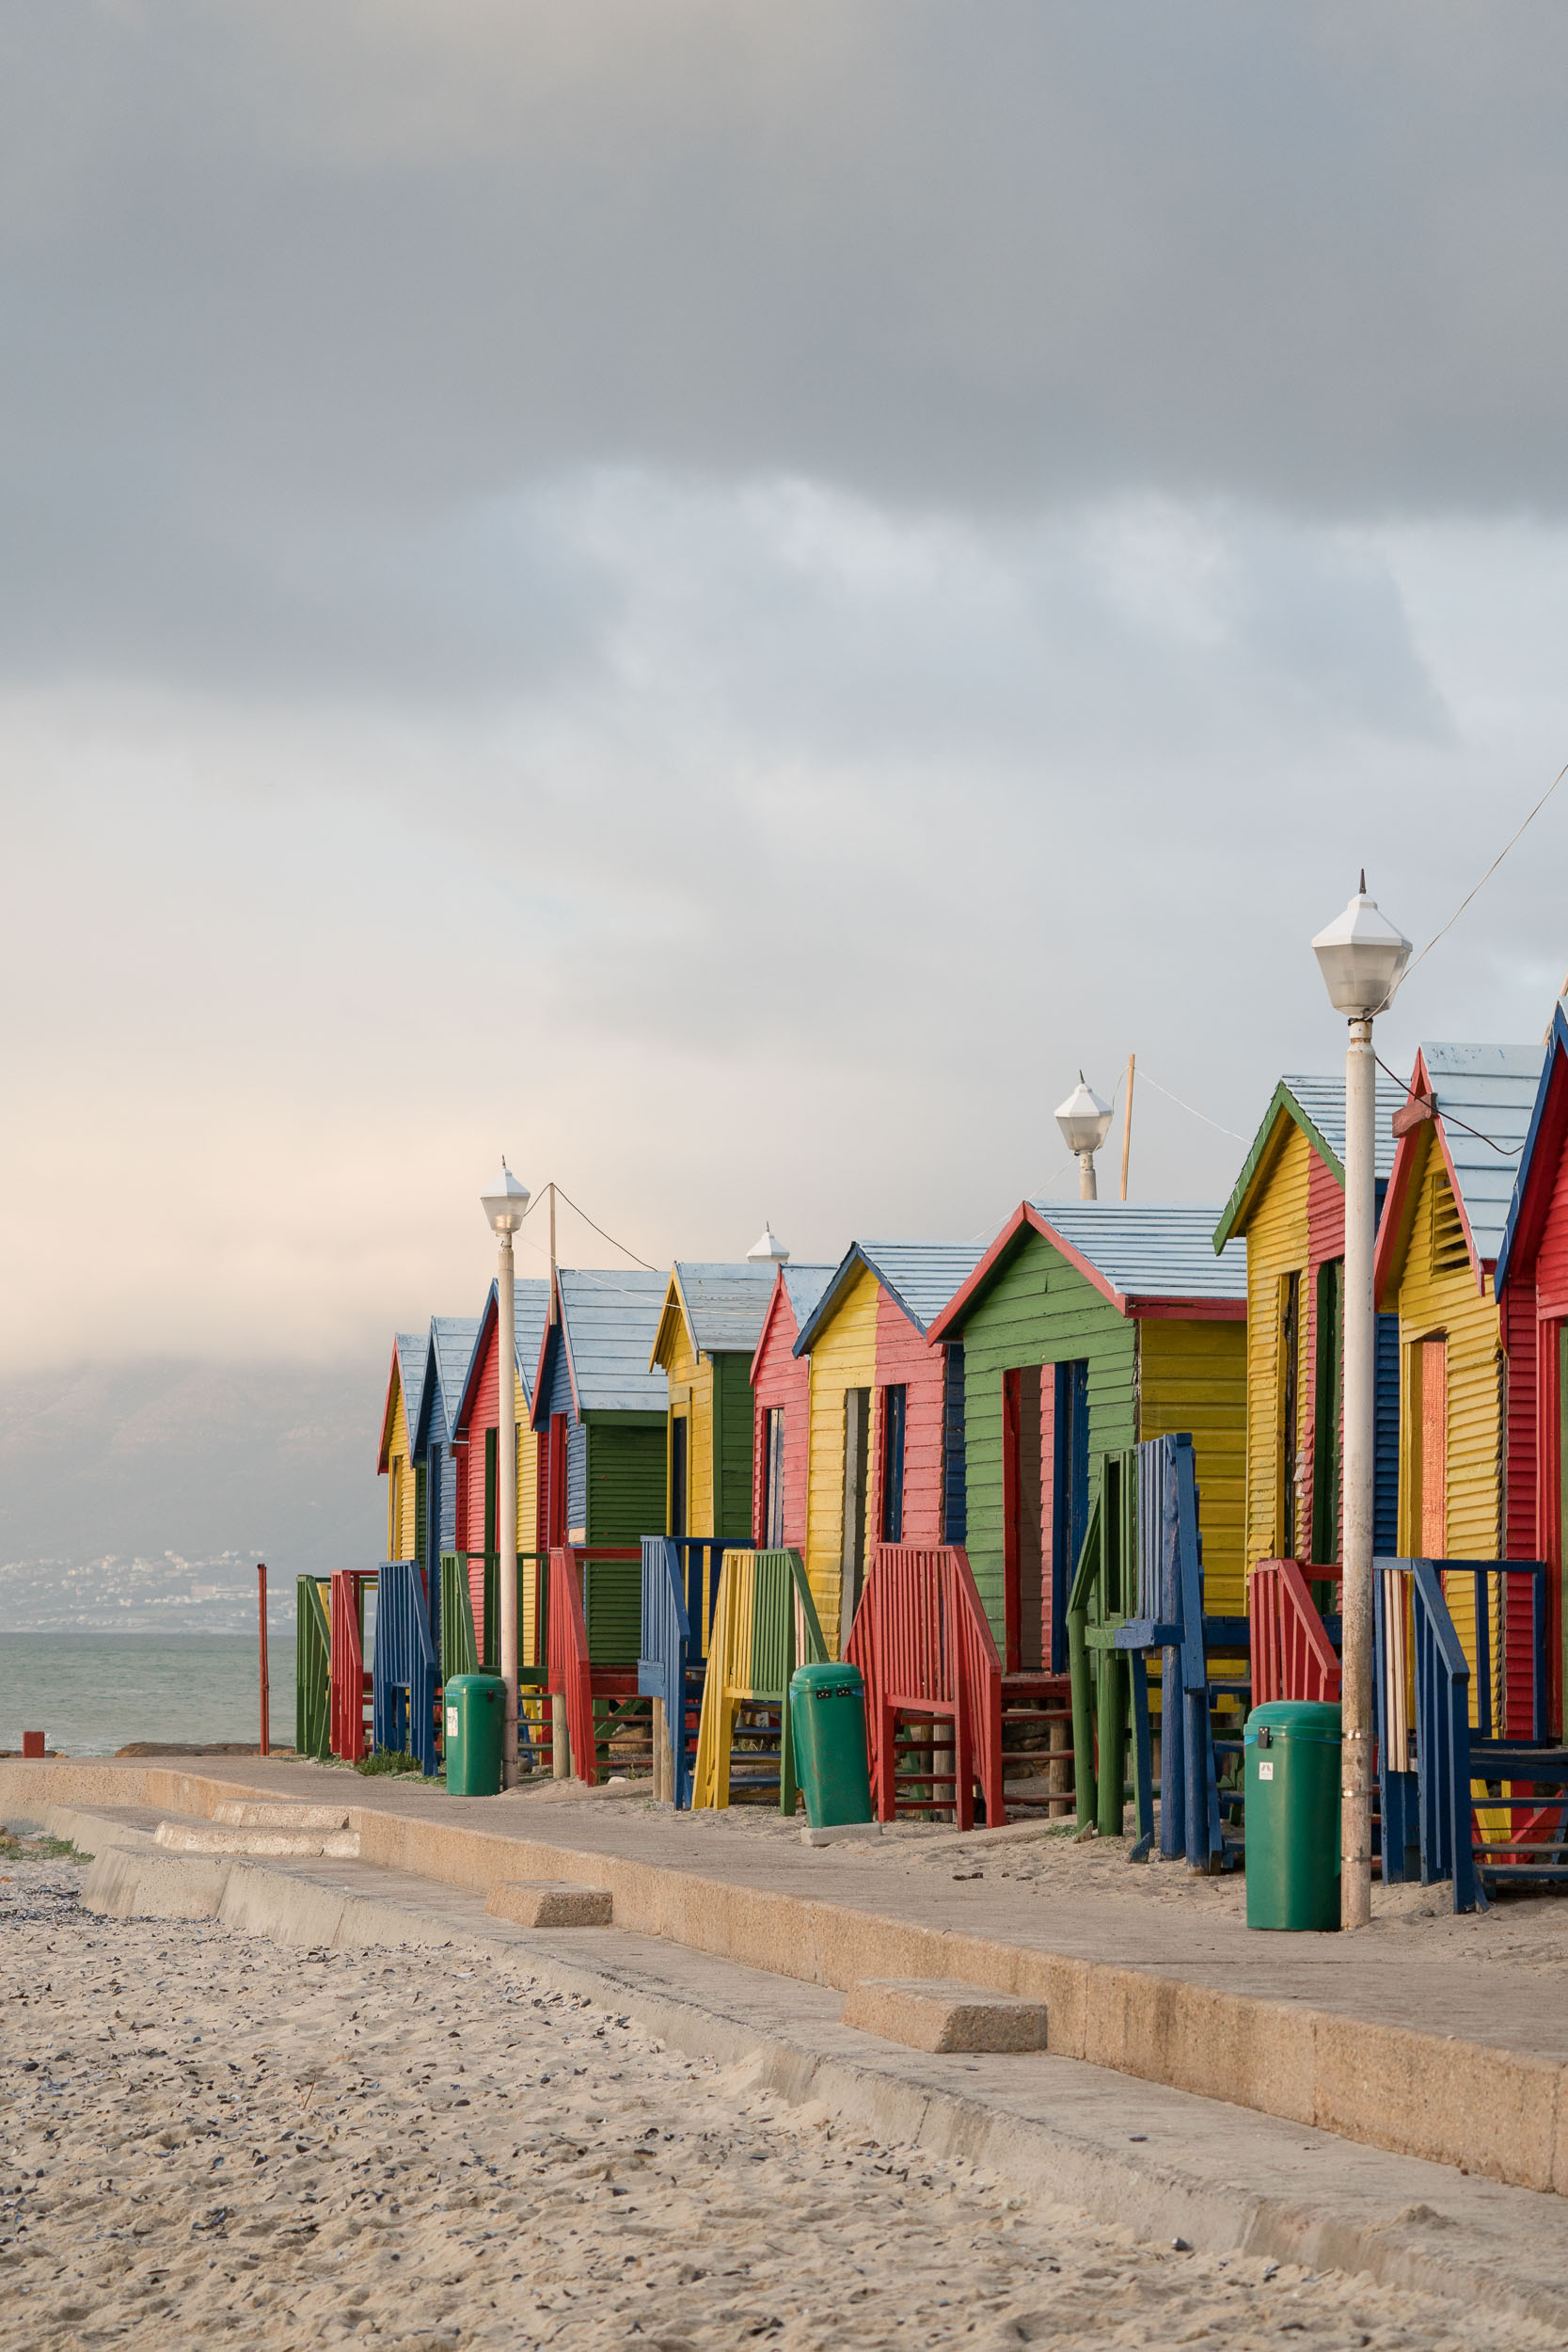 the_getaway_edit_south_africa_cape_town-3.jpg